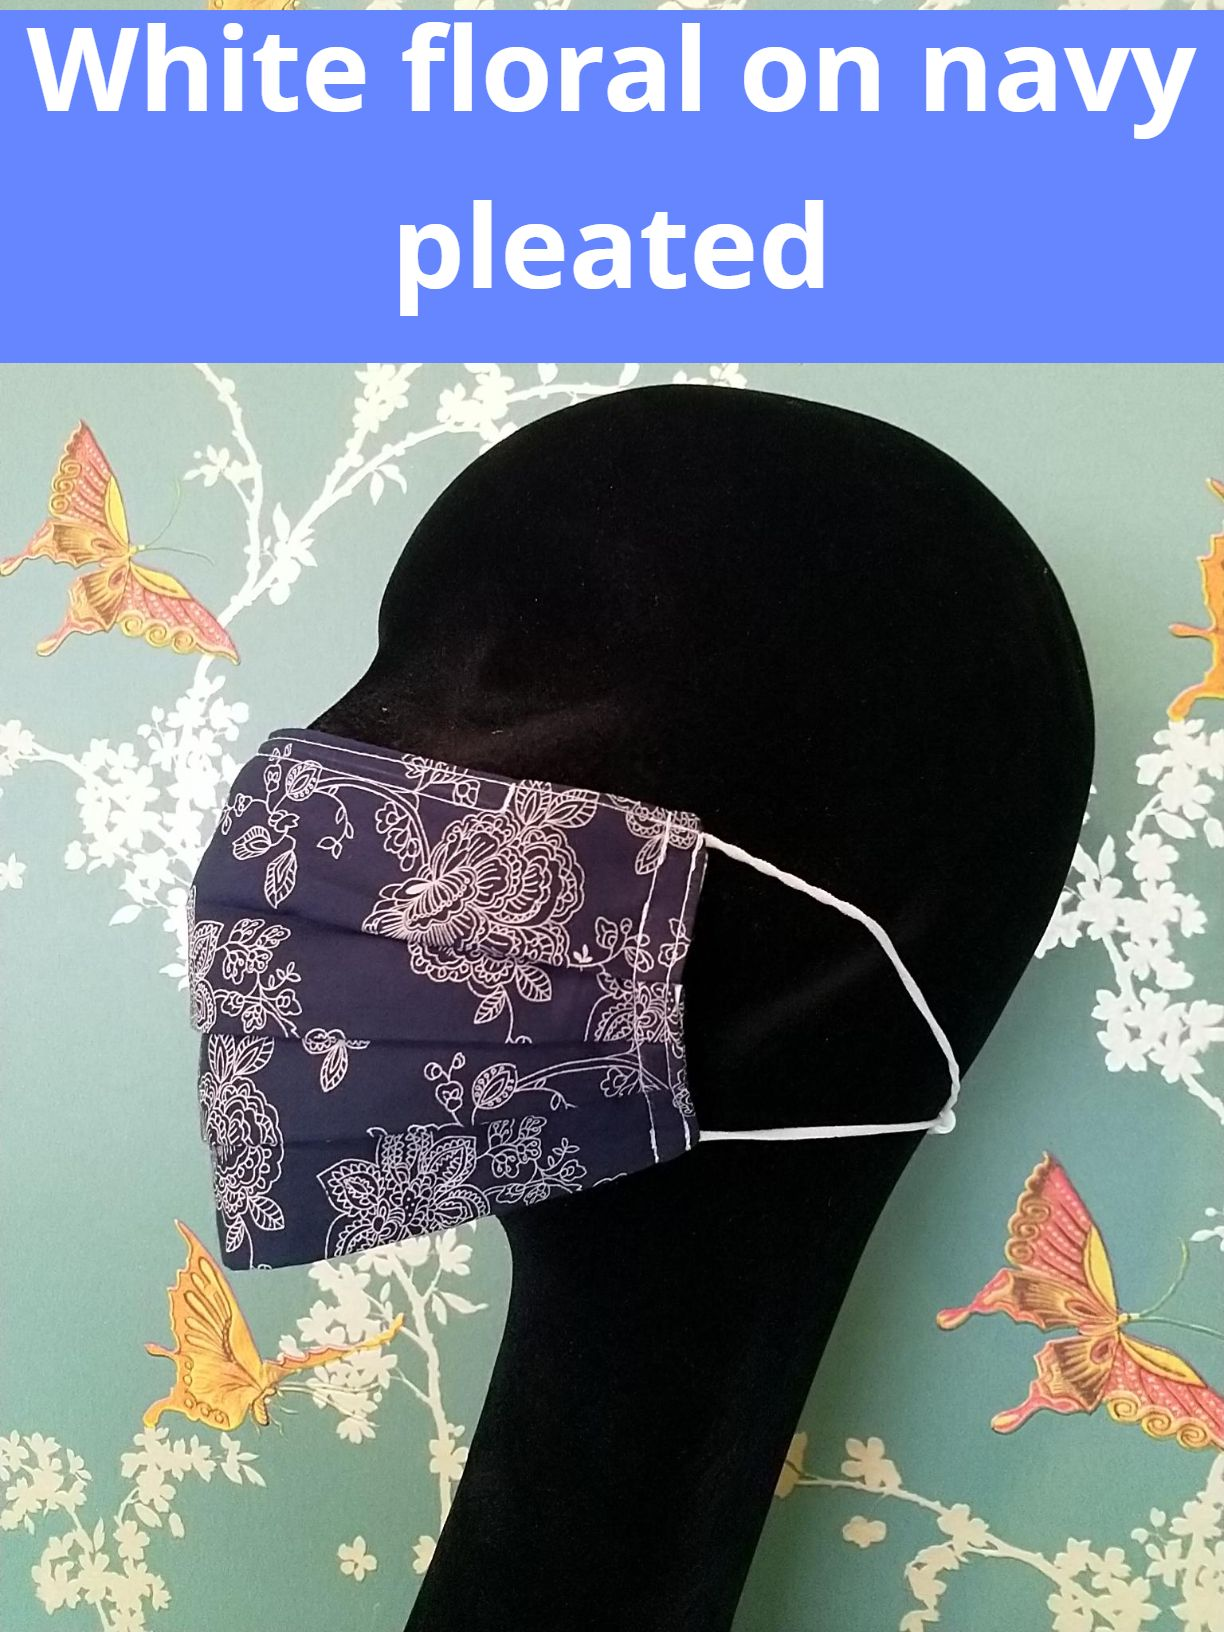 Flora & Fauna cotton face masks